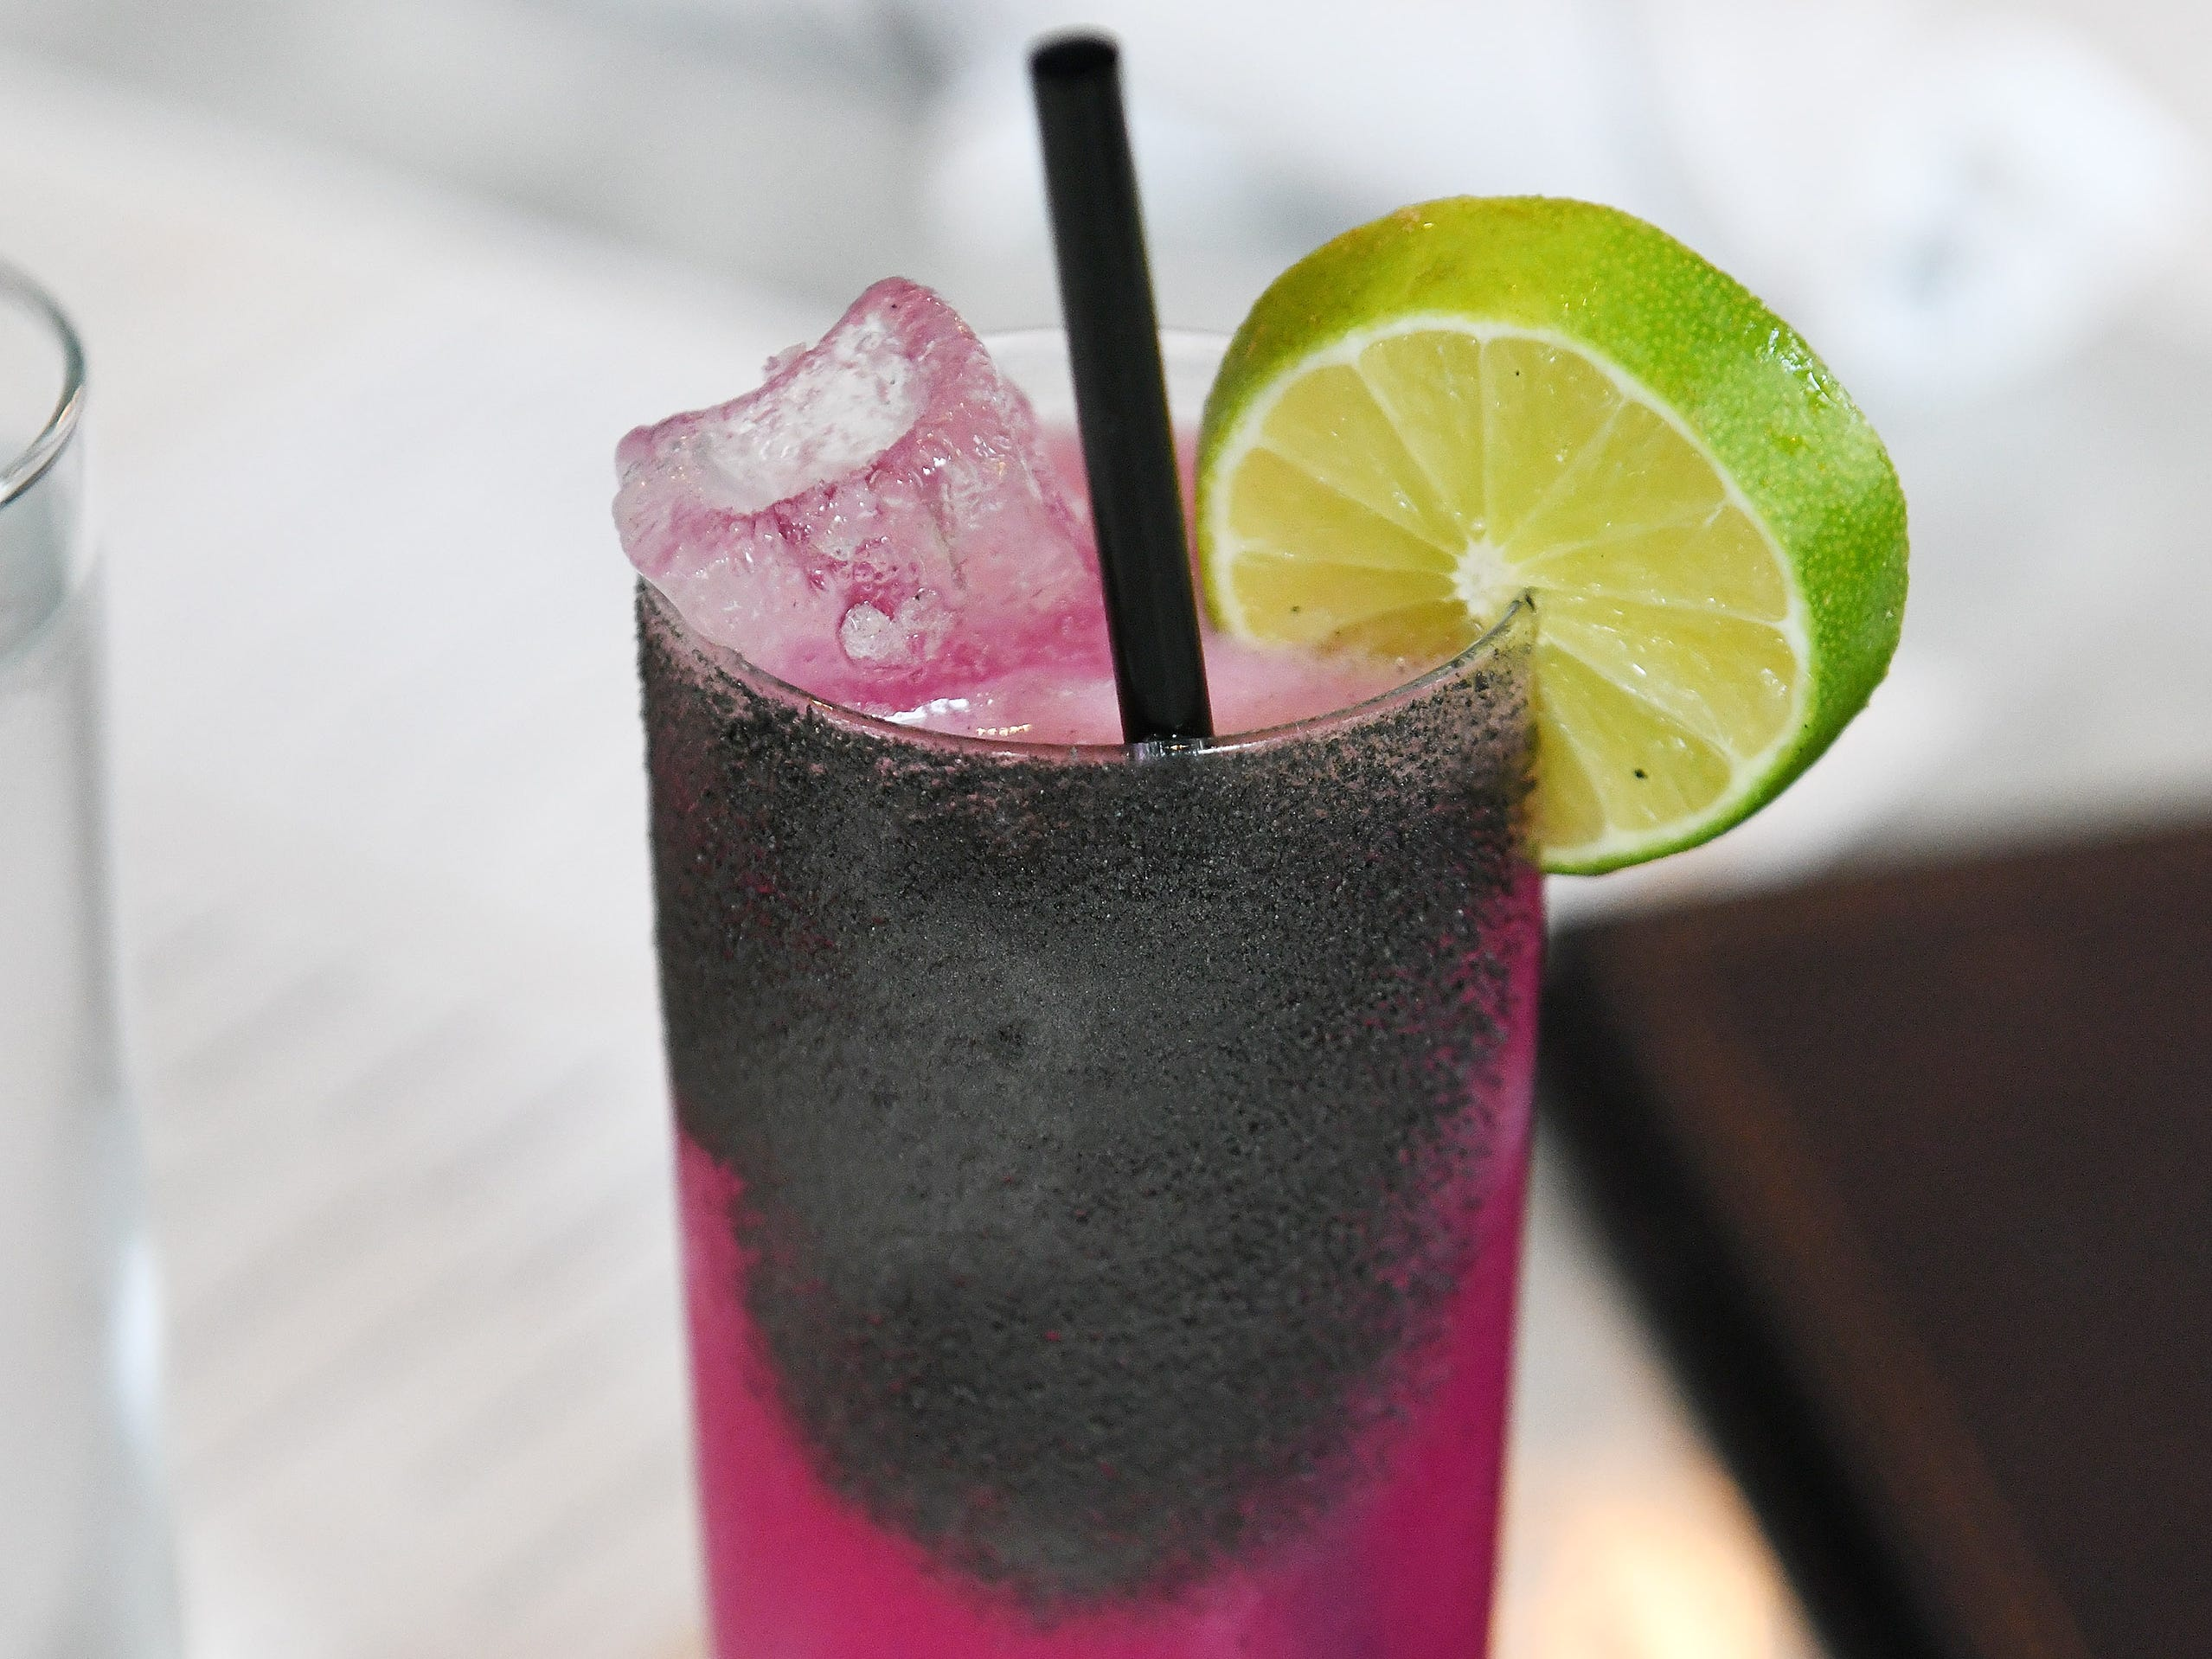 A drink called Fire & Blood made with Patron Silver tequila, dragon fruit, lime, grapefruit, habanero and soda.